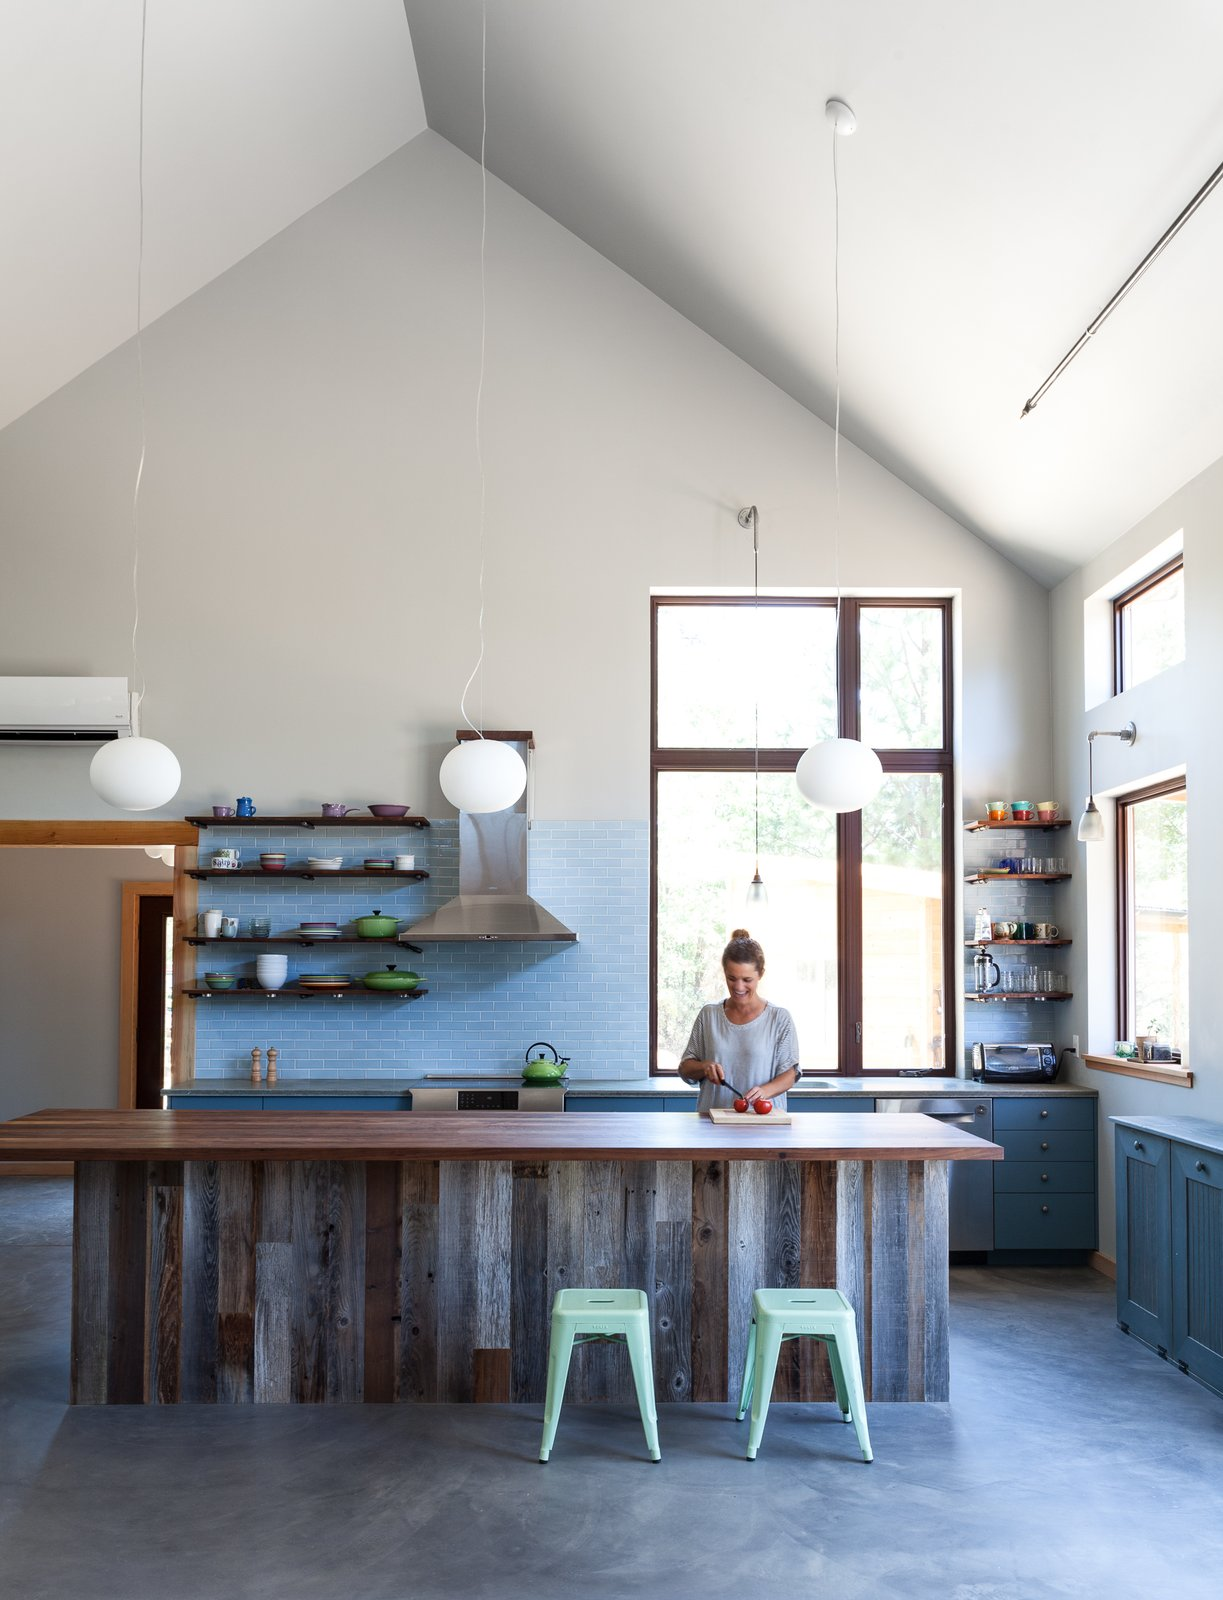 #open #kitchen #northern #california #highceilings #tile #wood #concrete  Photo by Kat Alves   Kitchen from Kitchens